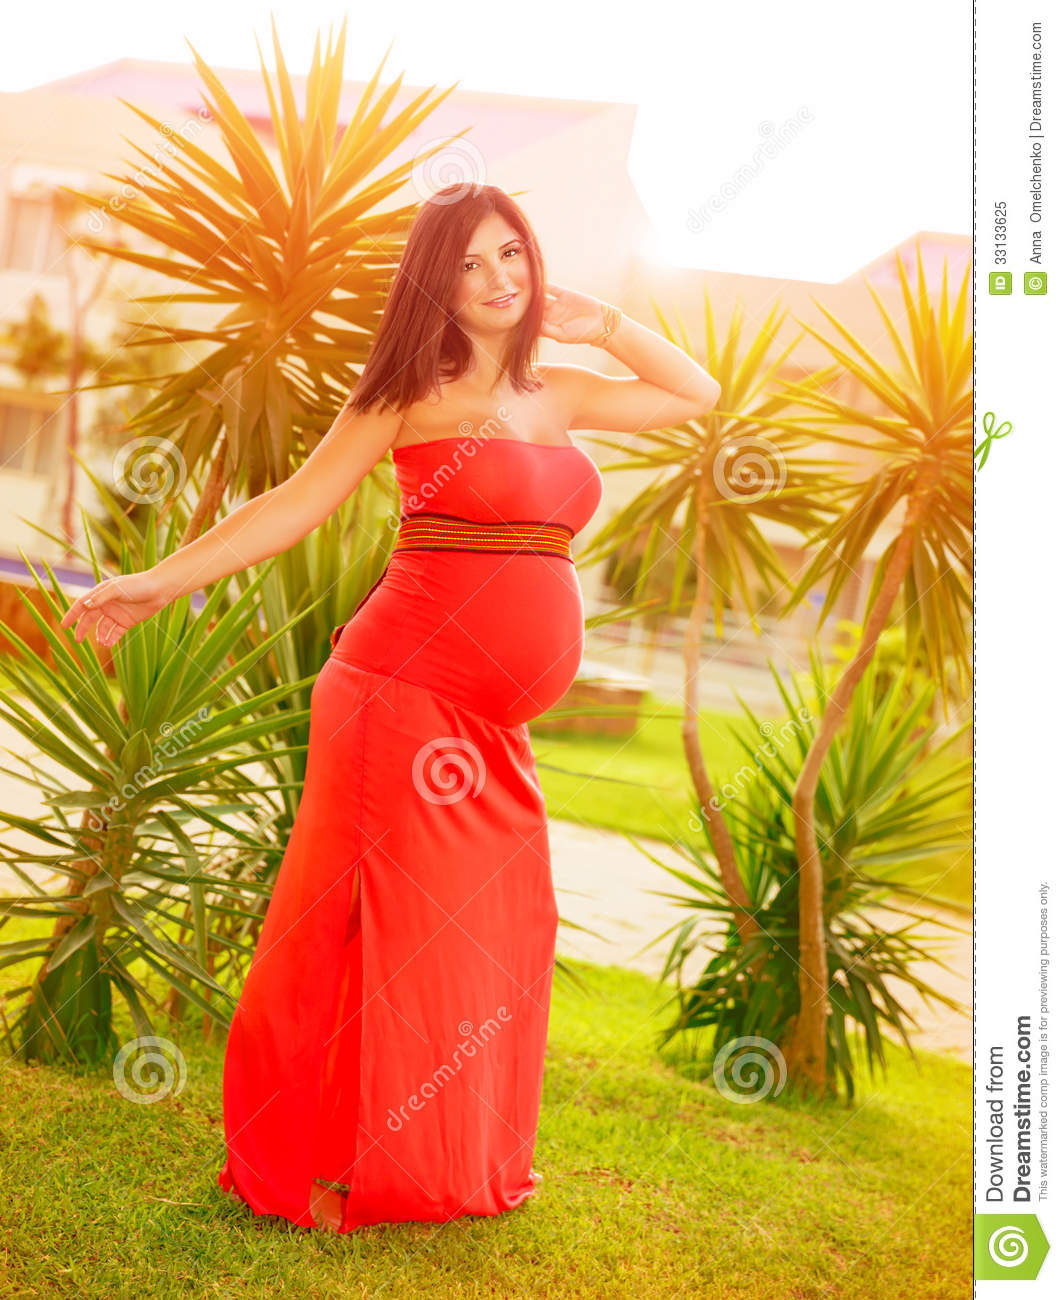 Epectant Girl Dancing Outdoors Beautiful Pregnant Model Posing On